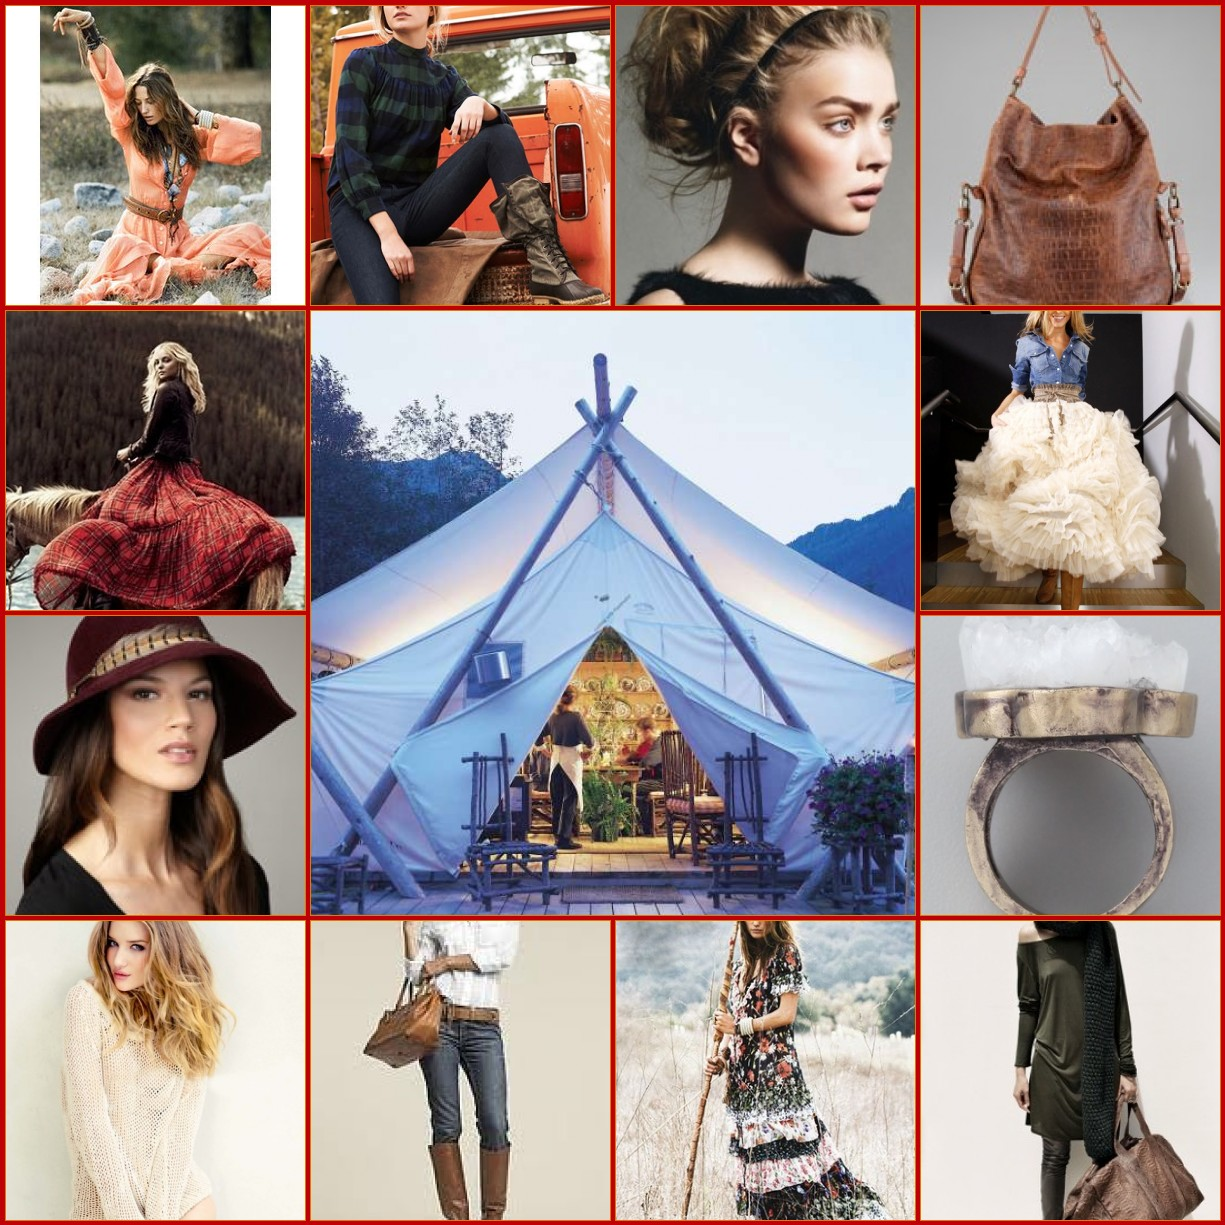 Fall fashion perfect for a glamourous camping weekend!